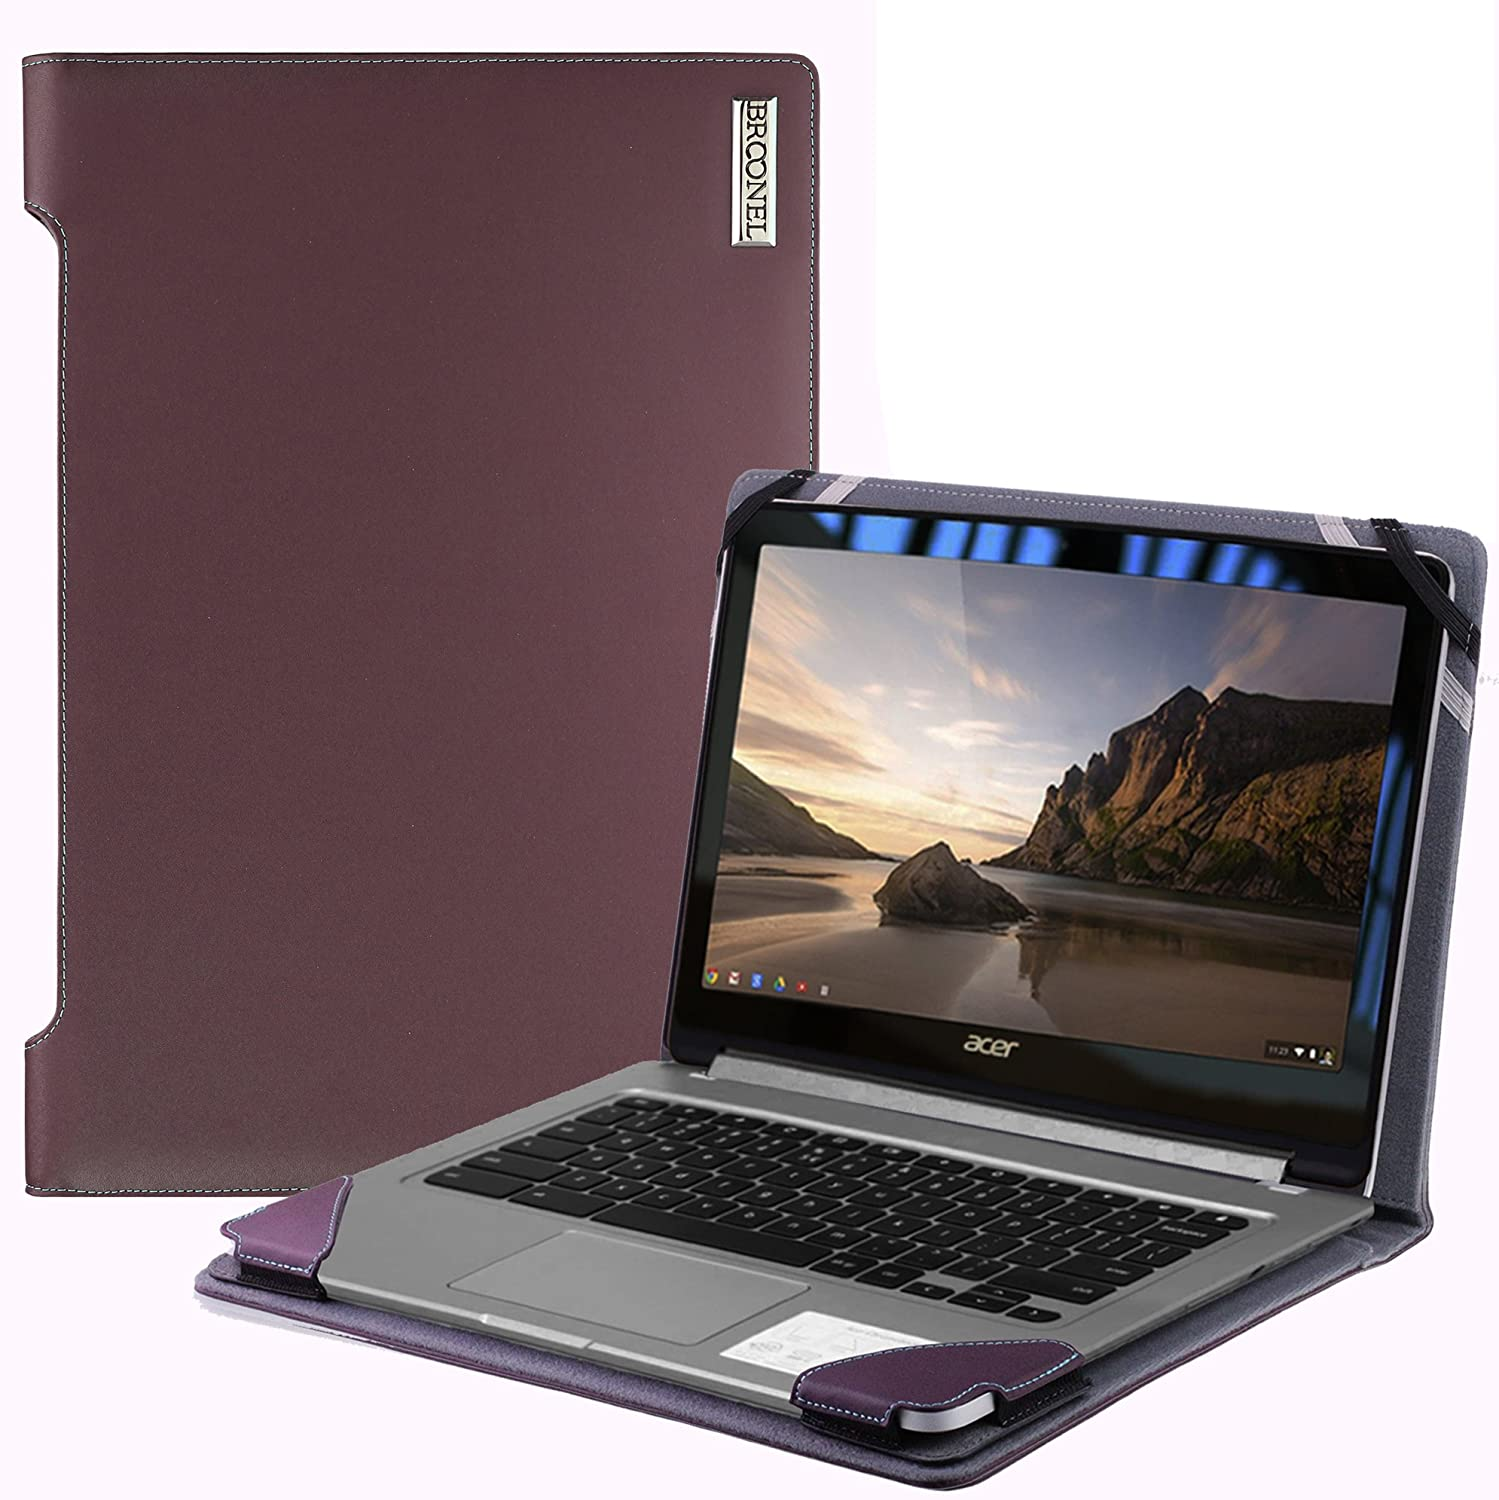 Broonel London - Profile Series - Purple Vegan Leather Laptop Case Cover Sleeve Compatible with The Acer Travelmate x349